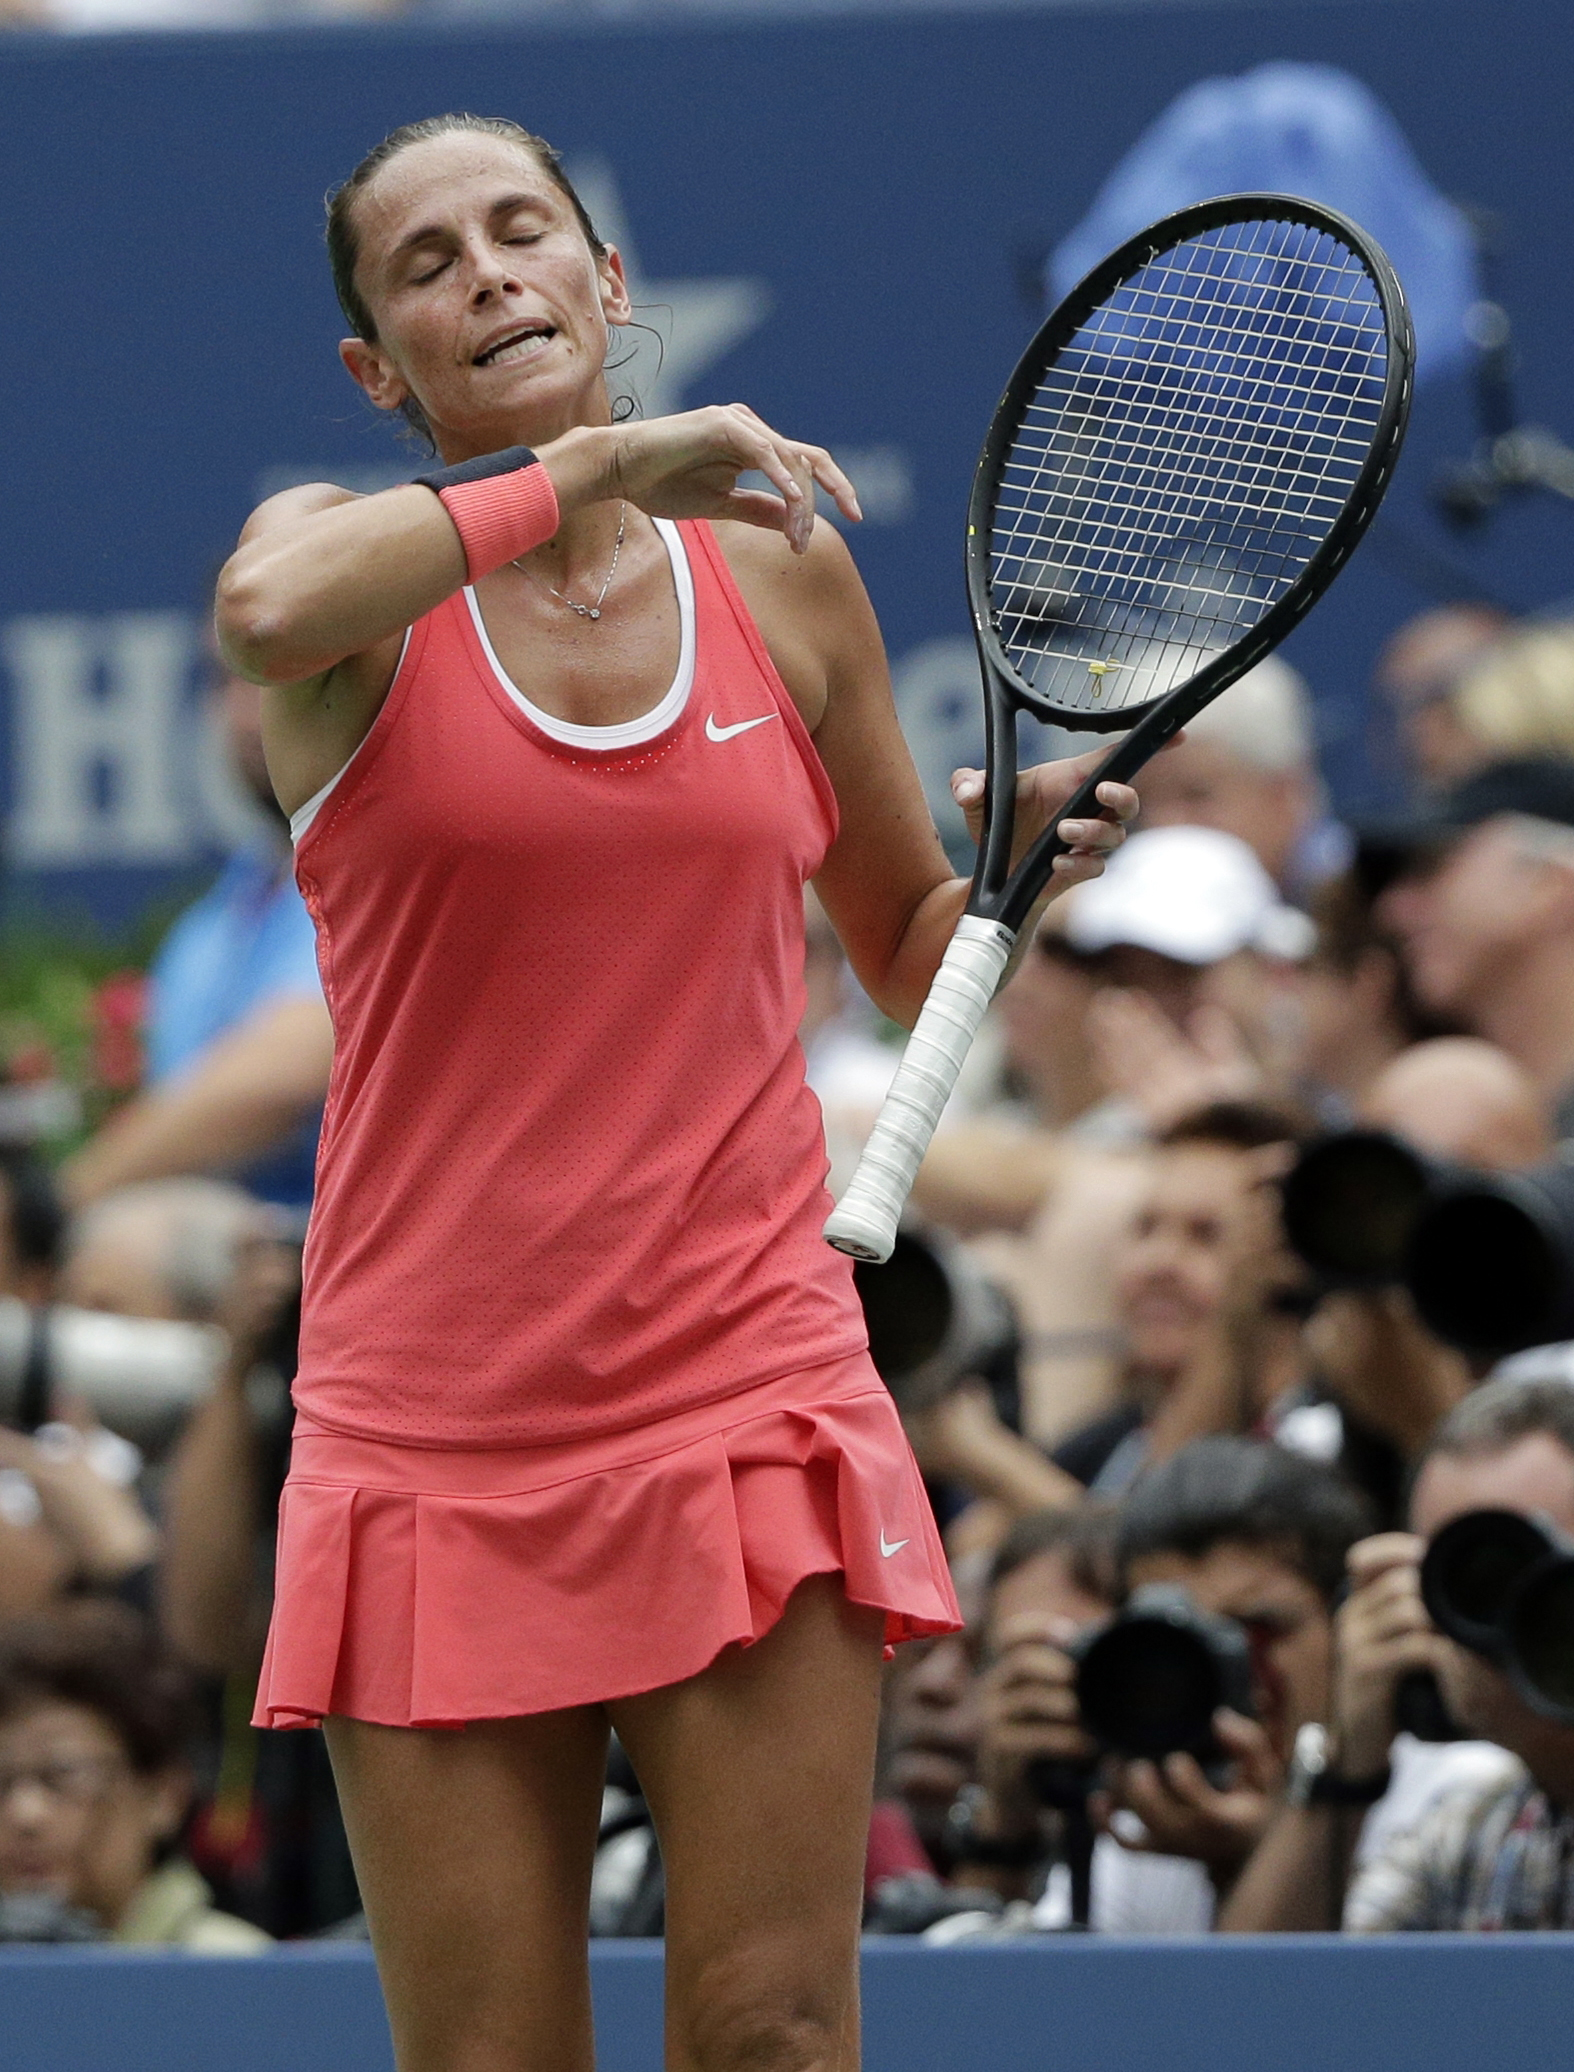 Roberta Vinci, of Italy, reacts after a point during the women's championship match with Flavia Pennetta, of Italy, of the U.S. Open tennis tournament, Saturday, Sept. 12, 2015, in New York. (AP Photo/Bill Kostroun)